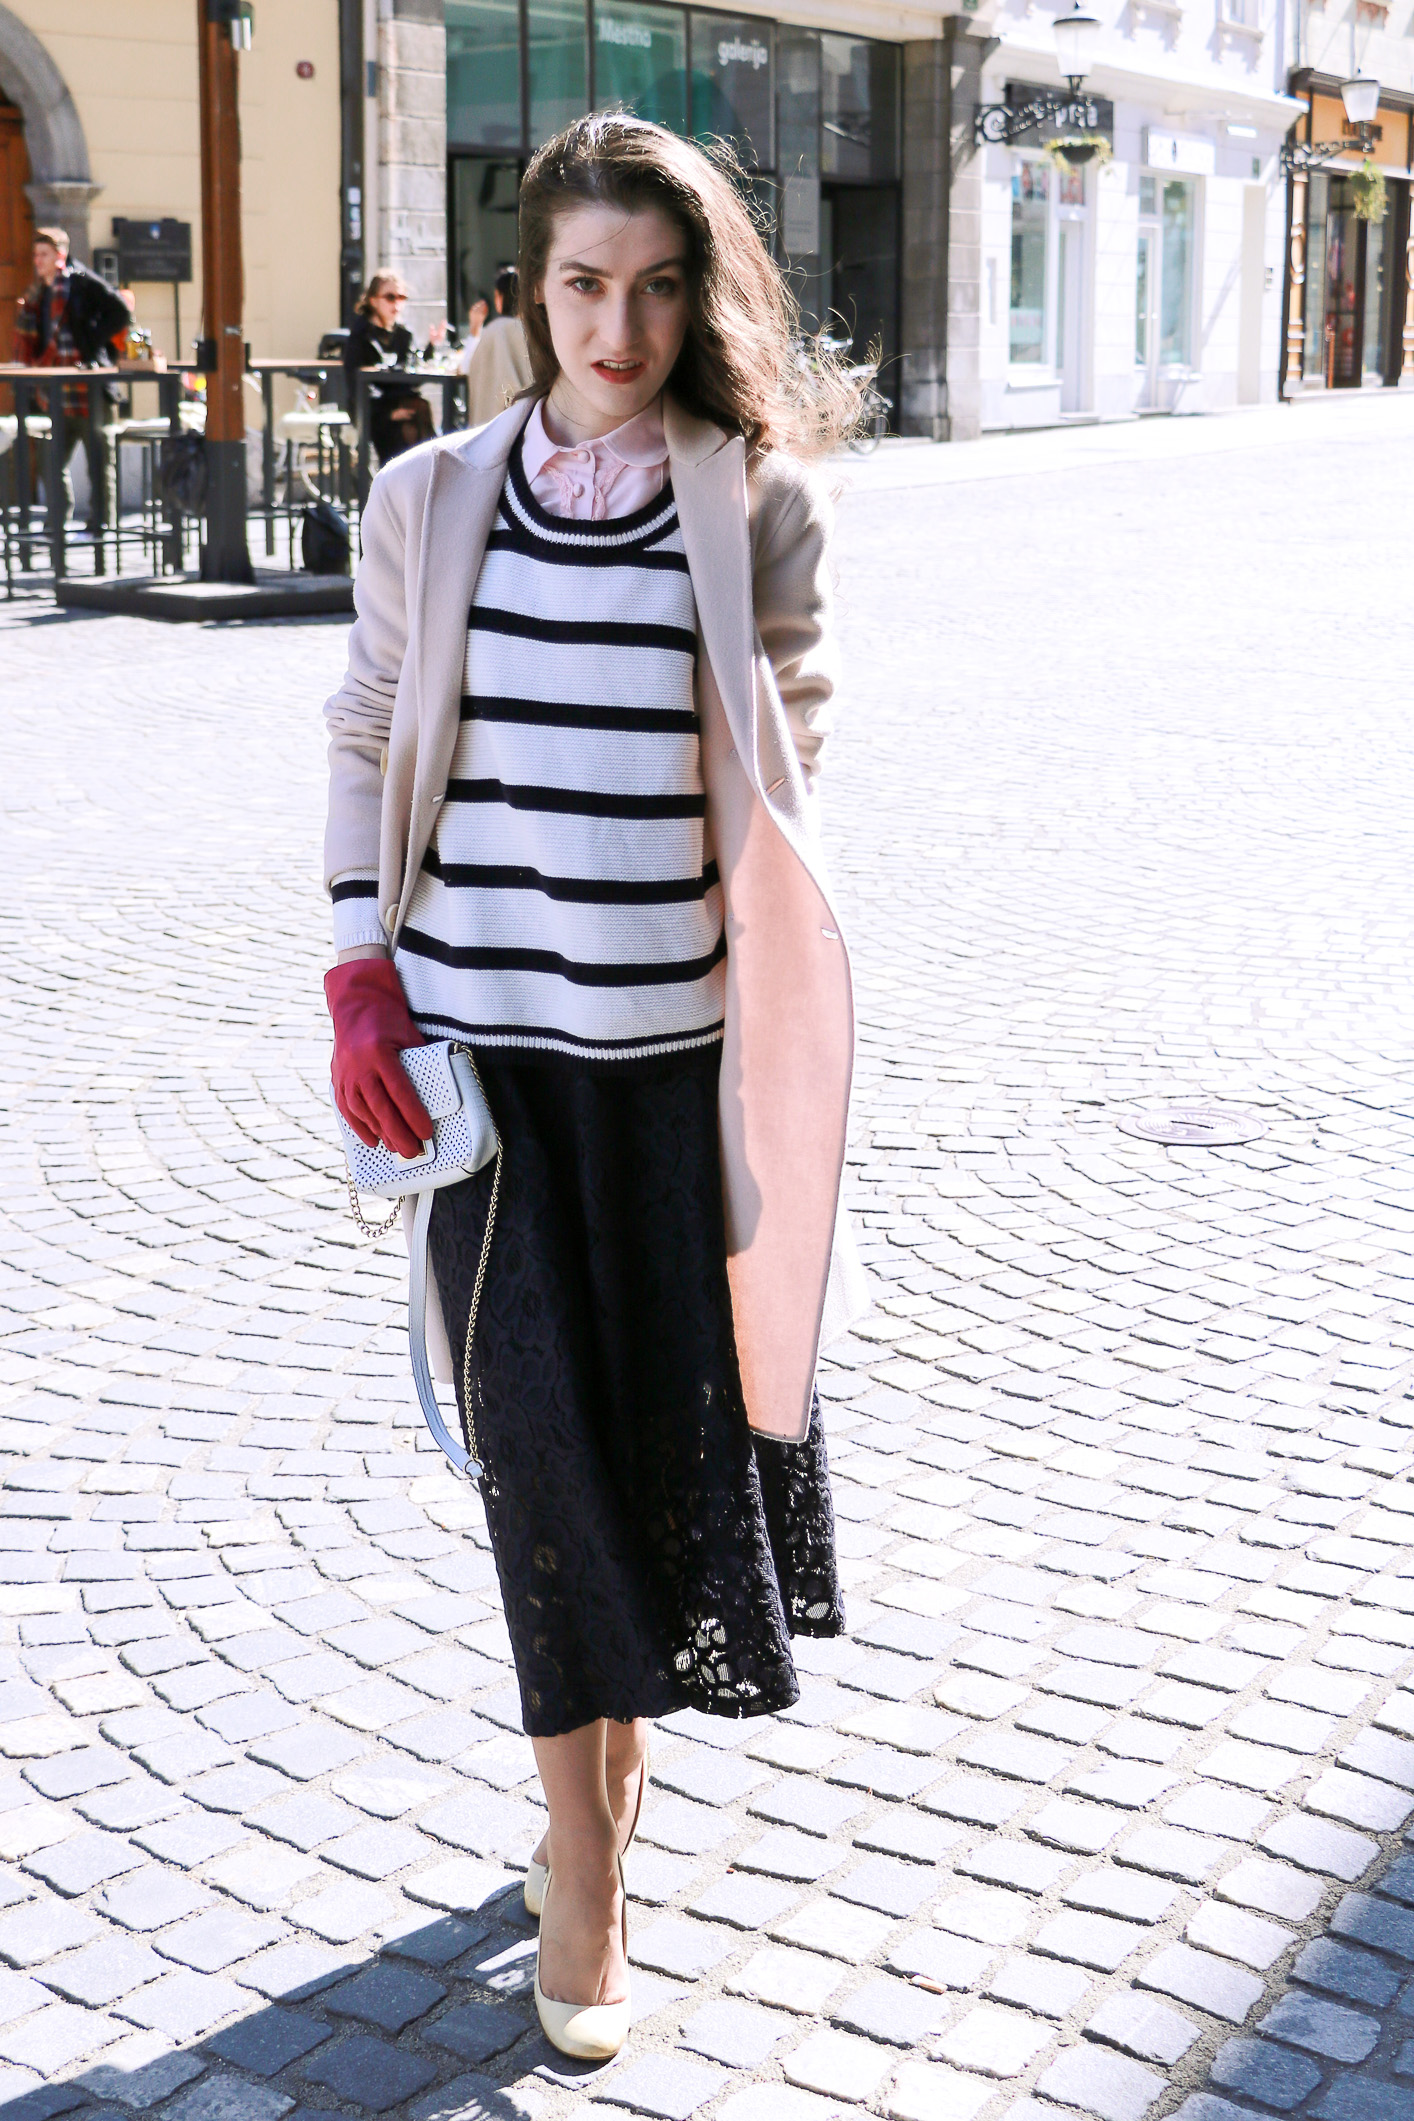 Fashion blogger Veronika Lipar of Brunette From Wall Street on how to style striped top over the midi skirt as seen on the catwalks this season